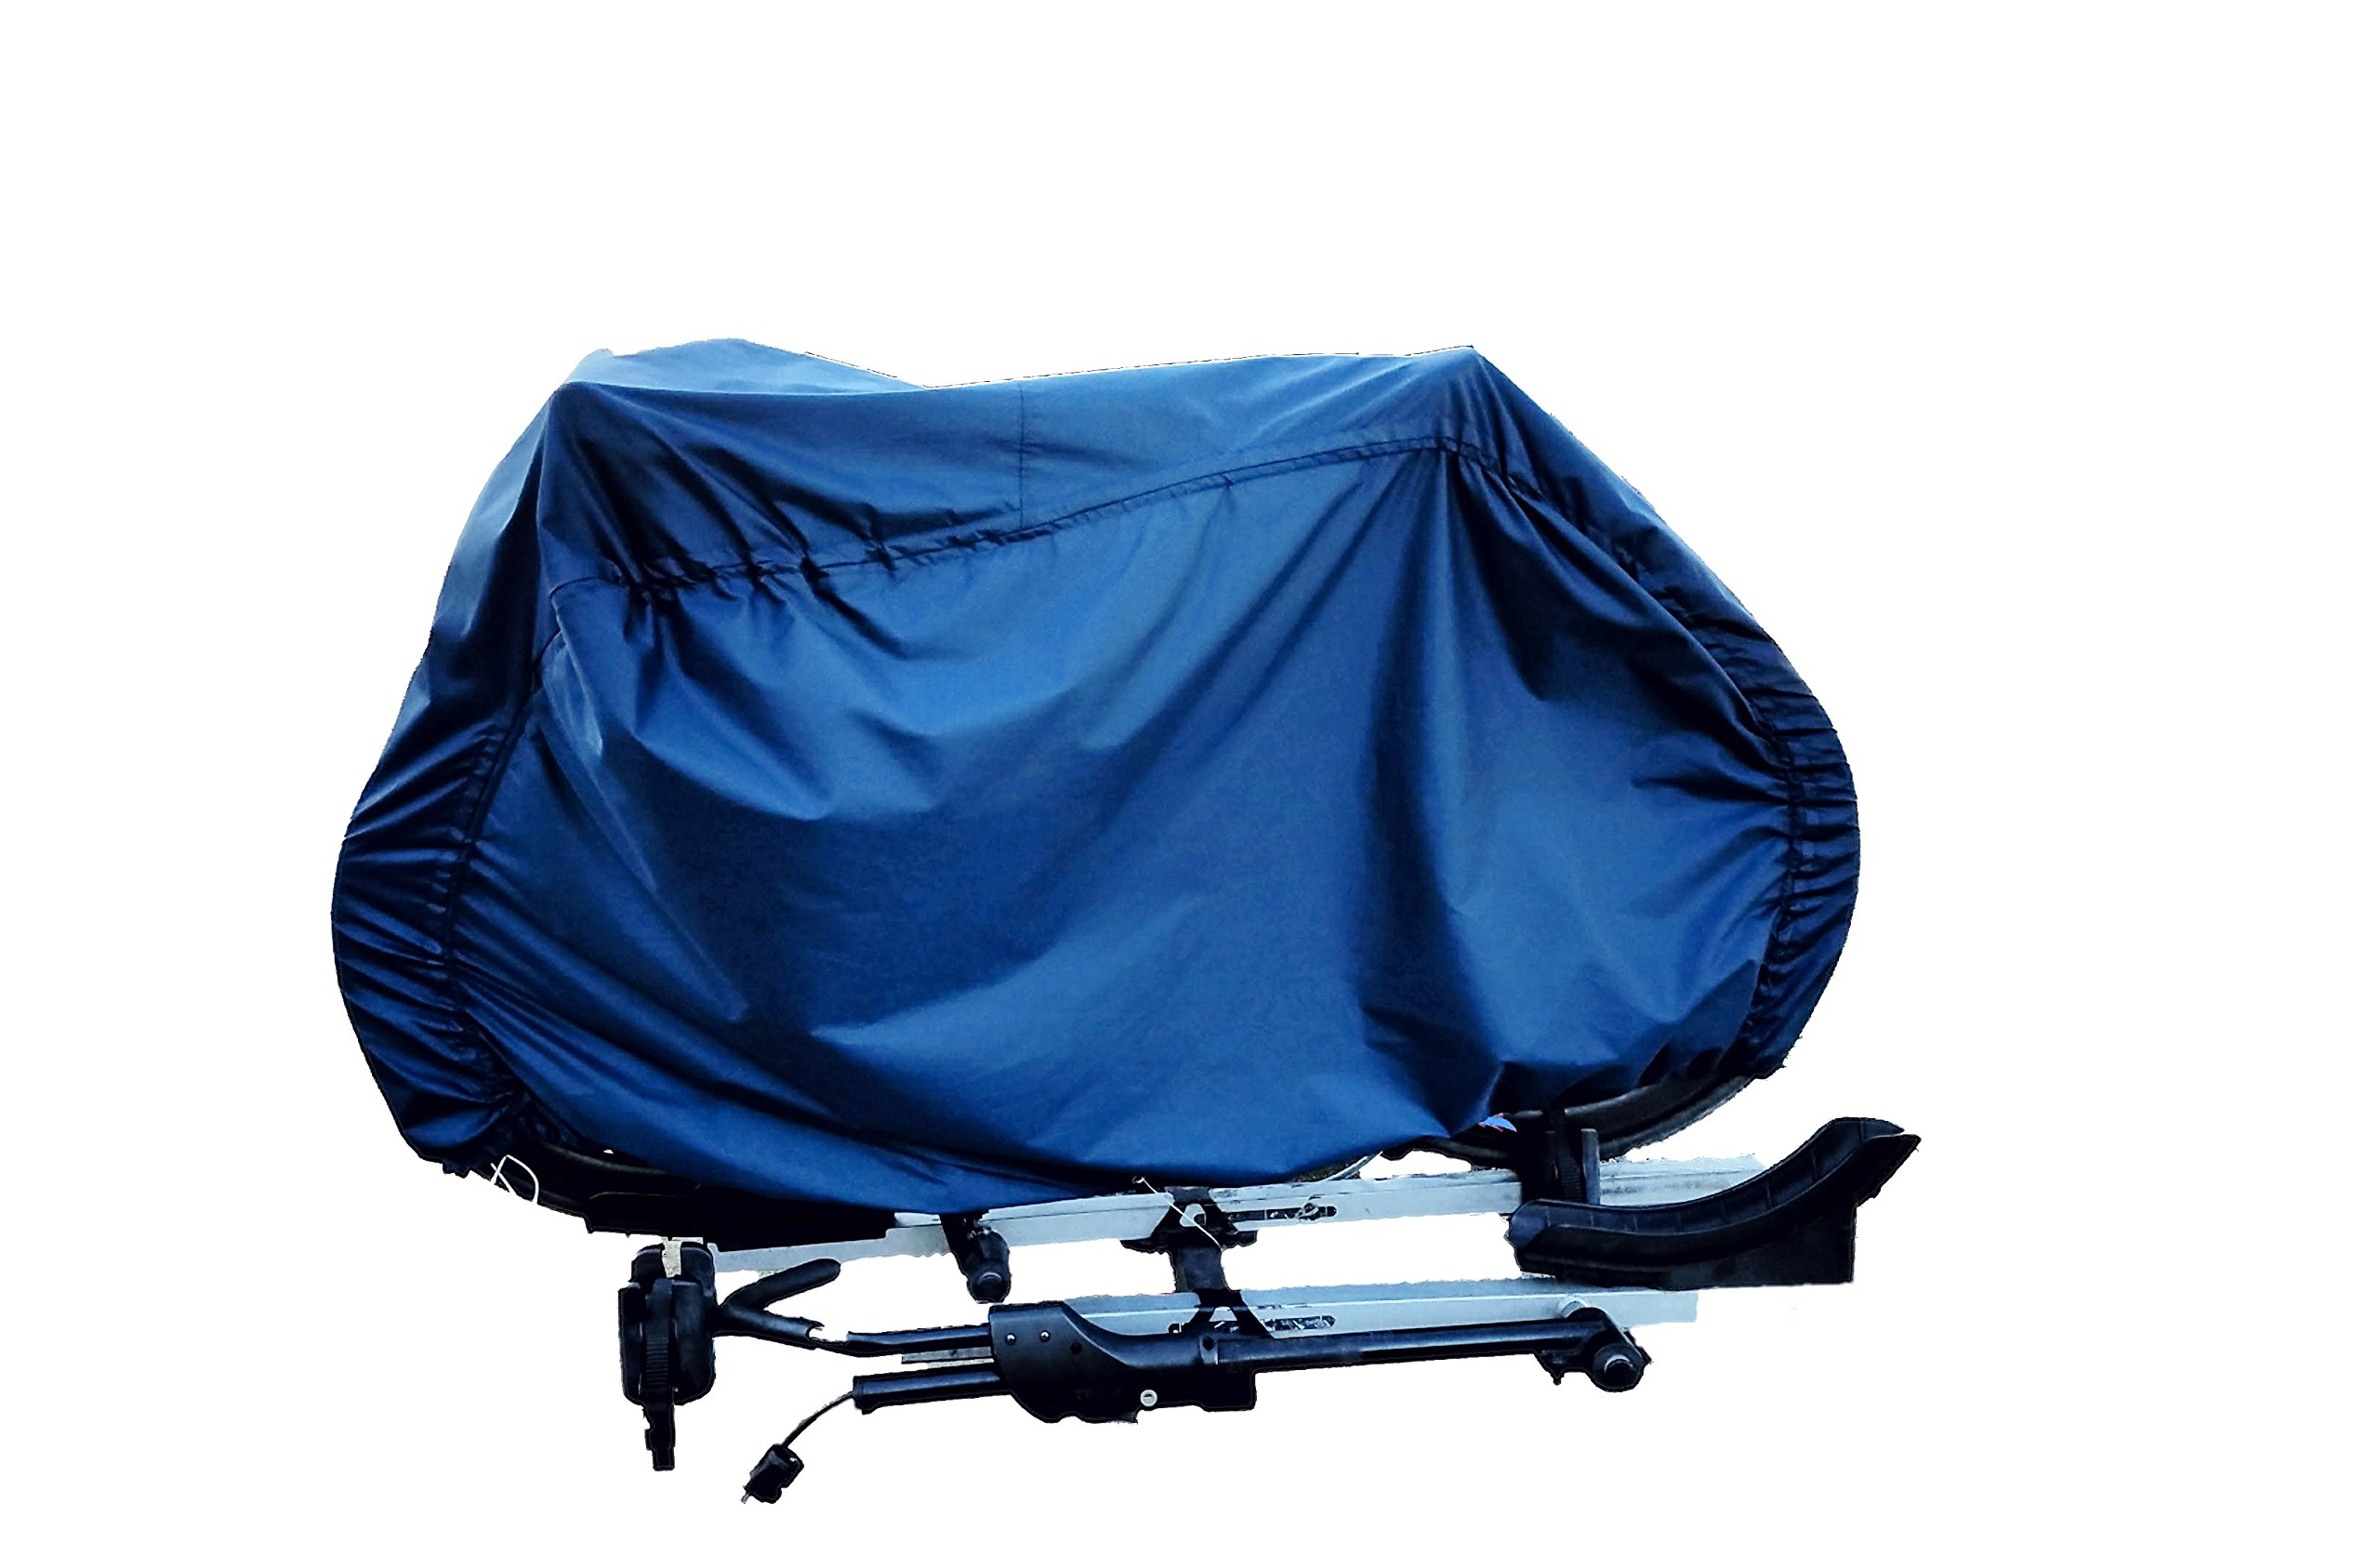 Heavy-duty bike cover for hitch-mount bike racks by OVERCOVERED (Image #1)